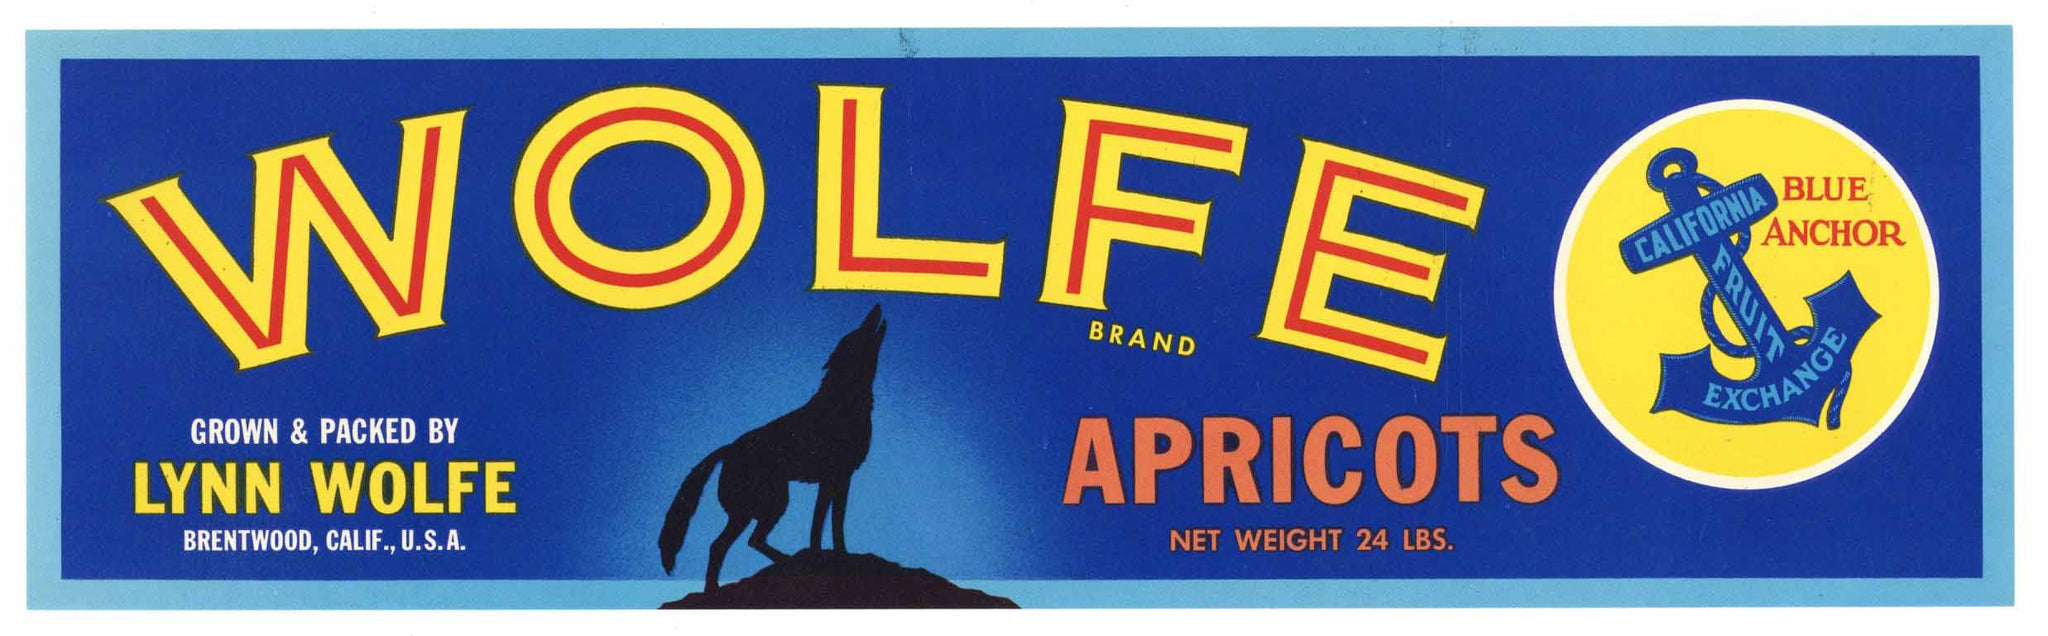 Wolfe Brand Vintage Brentwood Apricot Fruit Crate Label